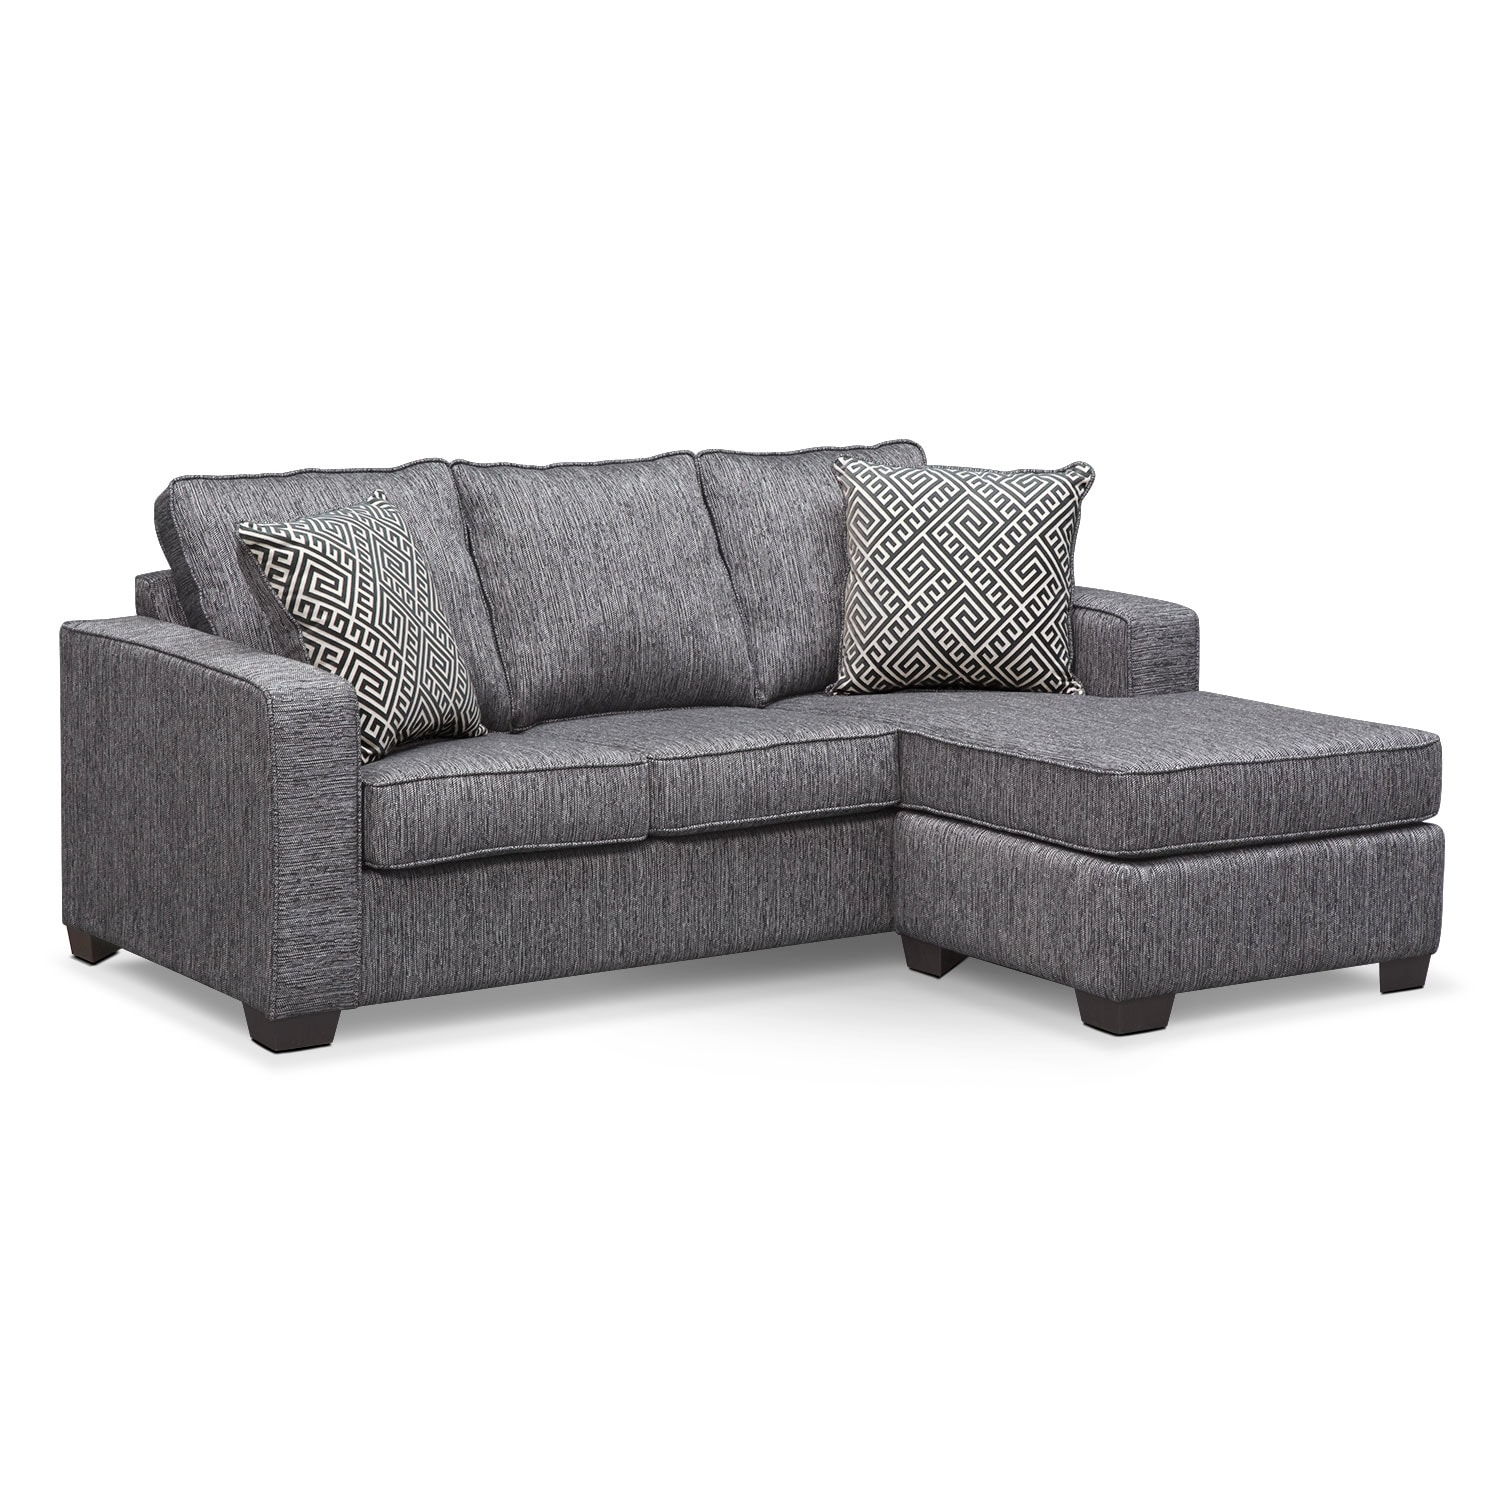 ... Sleeper Sofa with Chaise - Charcoal. Hover to zoom  sc 1 st  Value City Furniture : sleeper sofa chaise lounge - Sectionals, Sofas & Couches